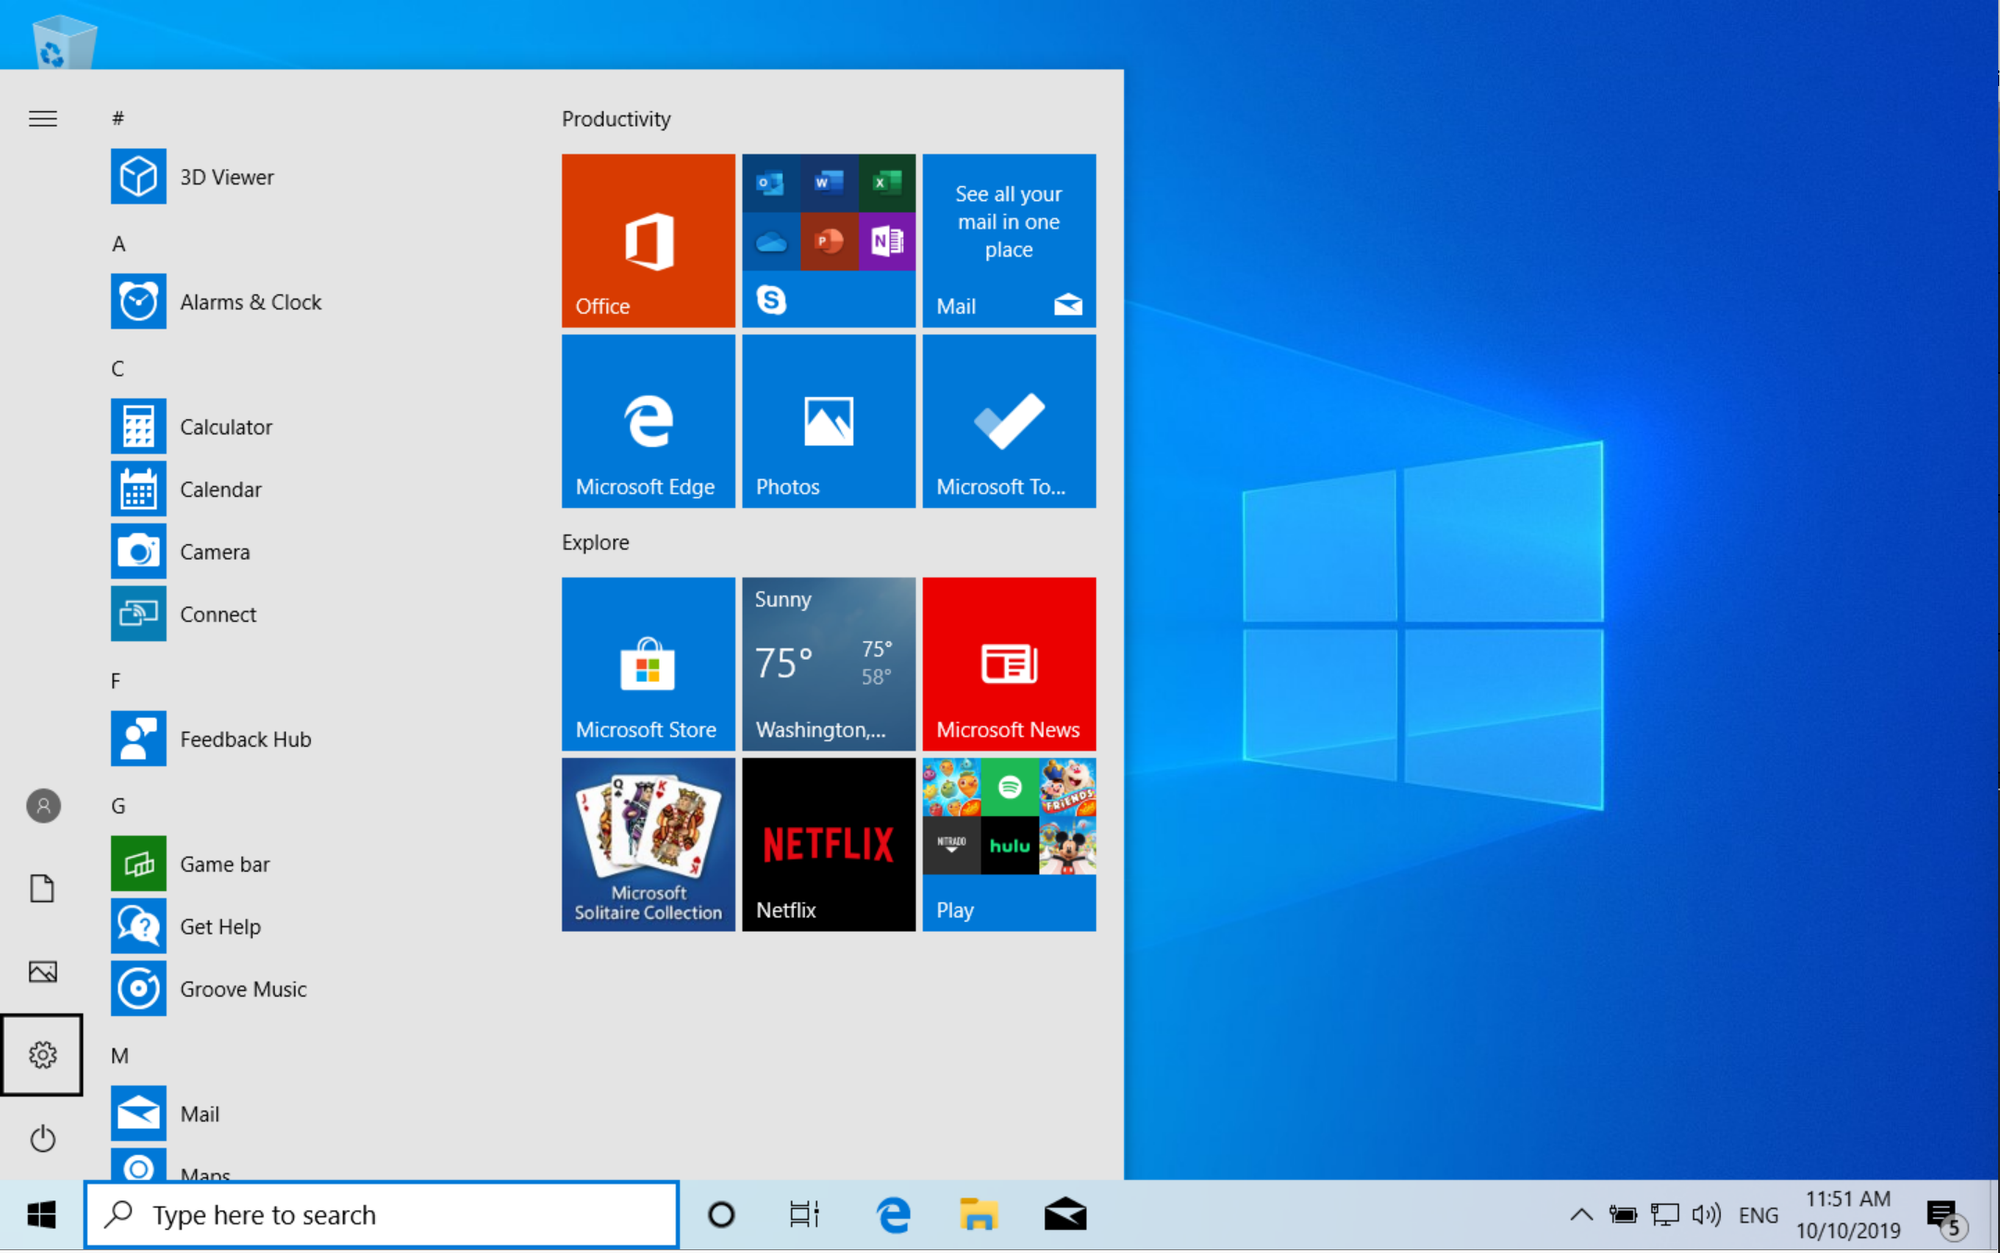 How to Install the Latest Windows 10 Feature Update Using Windows Update 6dc33660-265d-4ab0-a92d-7563b9bbf496?upload=true.png